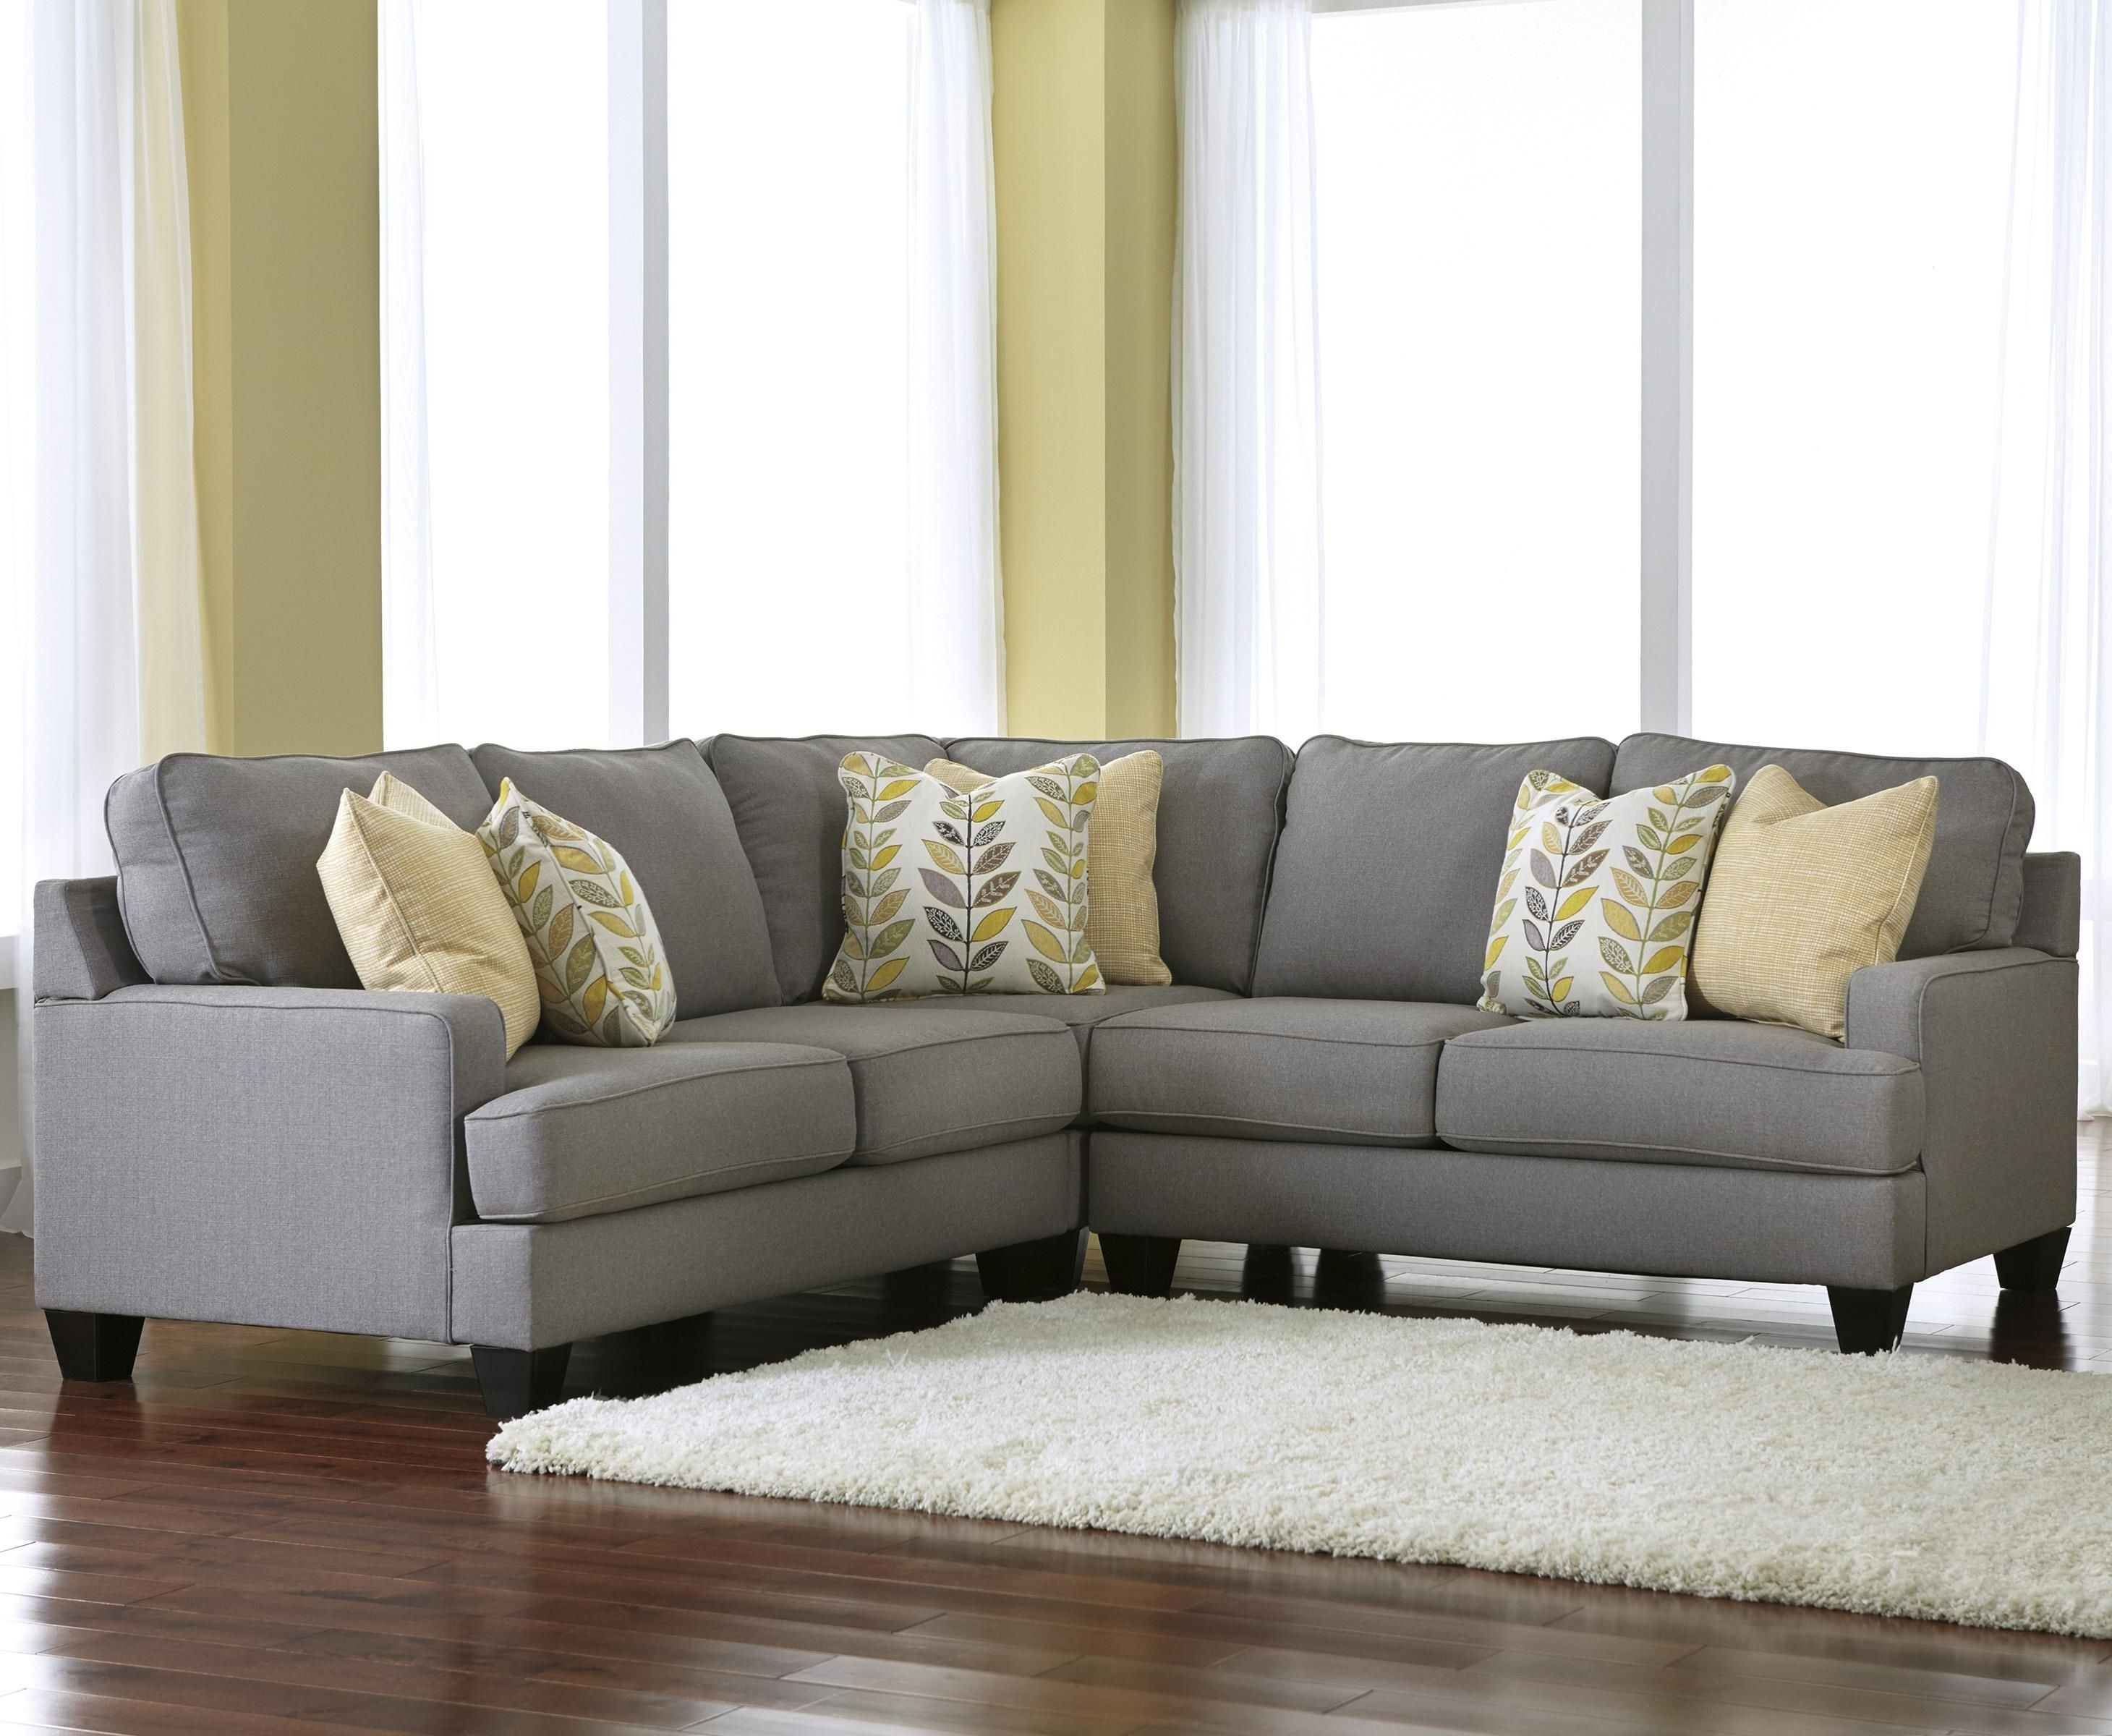 2019 Chamberly – Alloy Modern 3 Piece Corner Sectional Sofa With Pertaining To Nova Scotia Sectional Sofas (View 8 of 20)